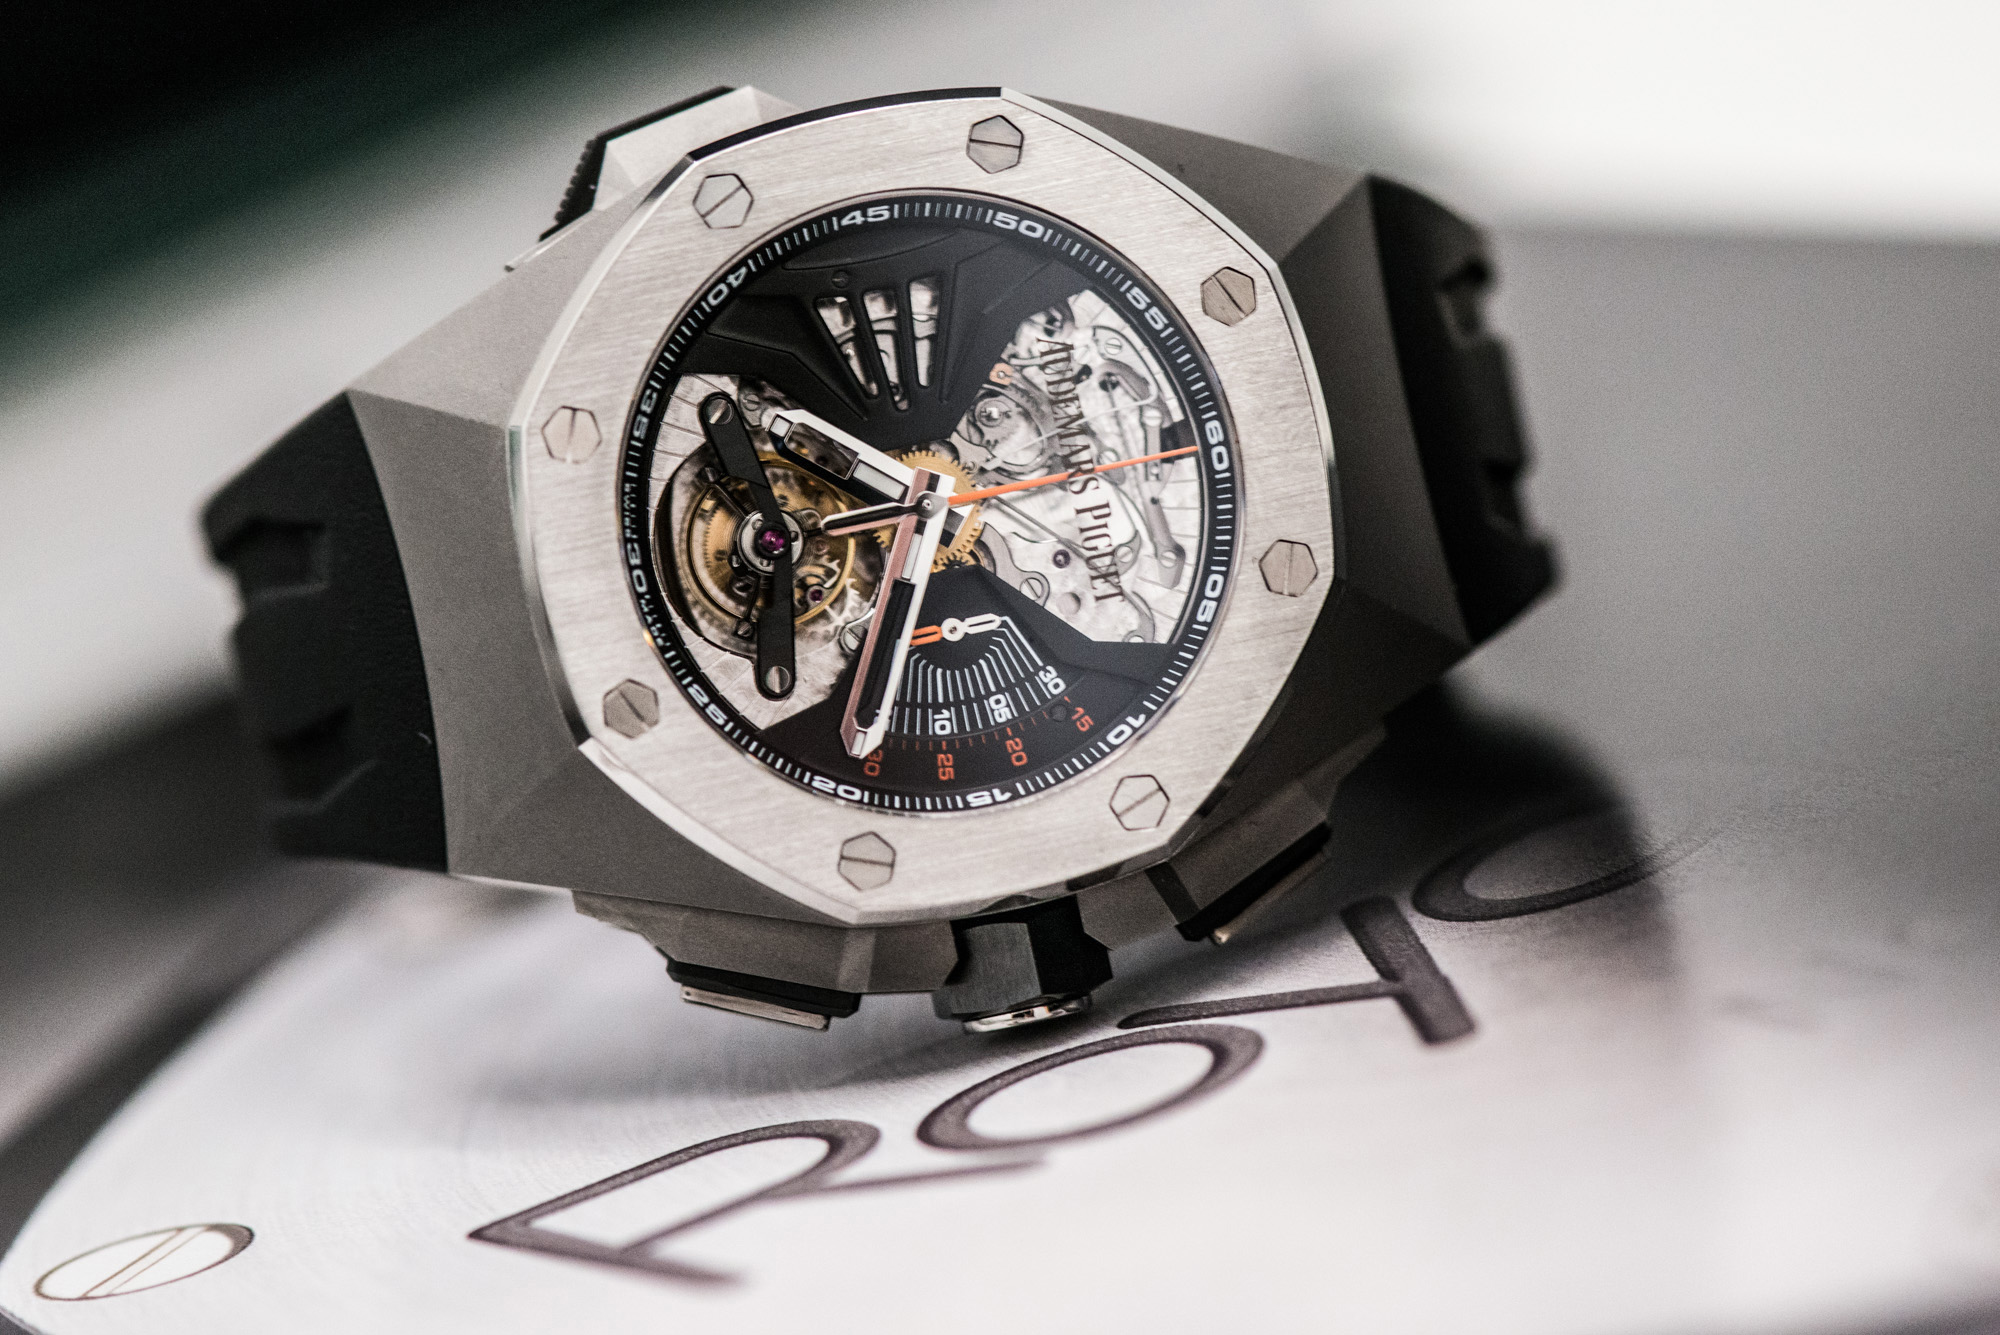 Audemars Piguet SIHH 2015 Concept Watch